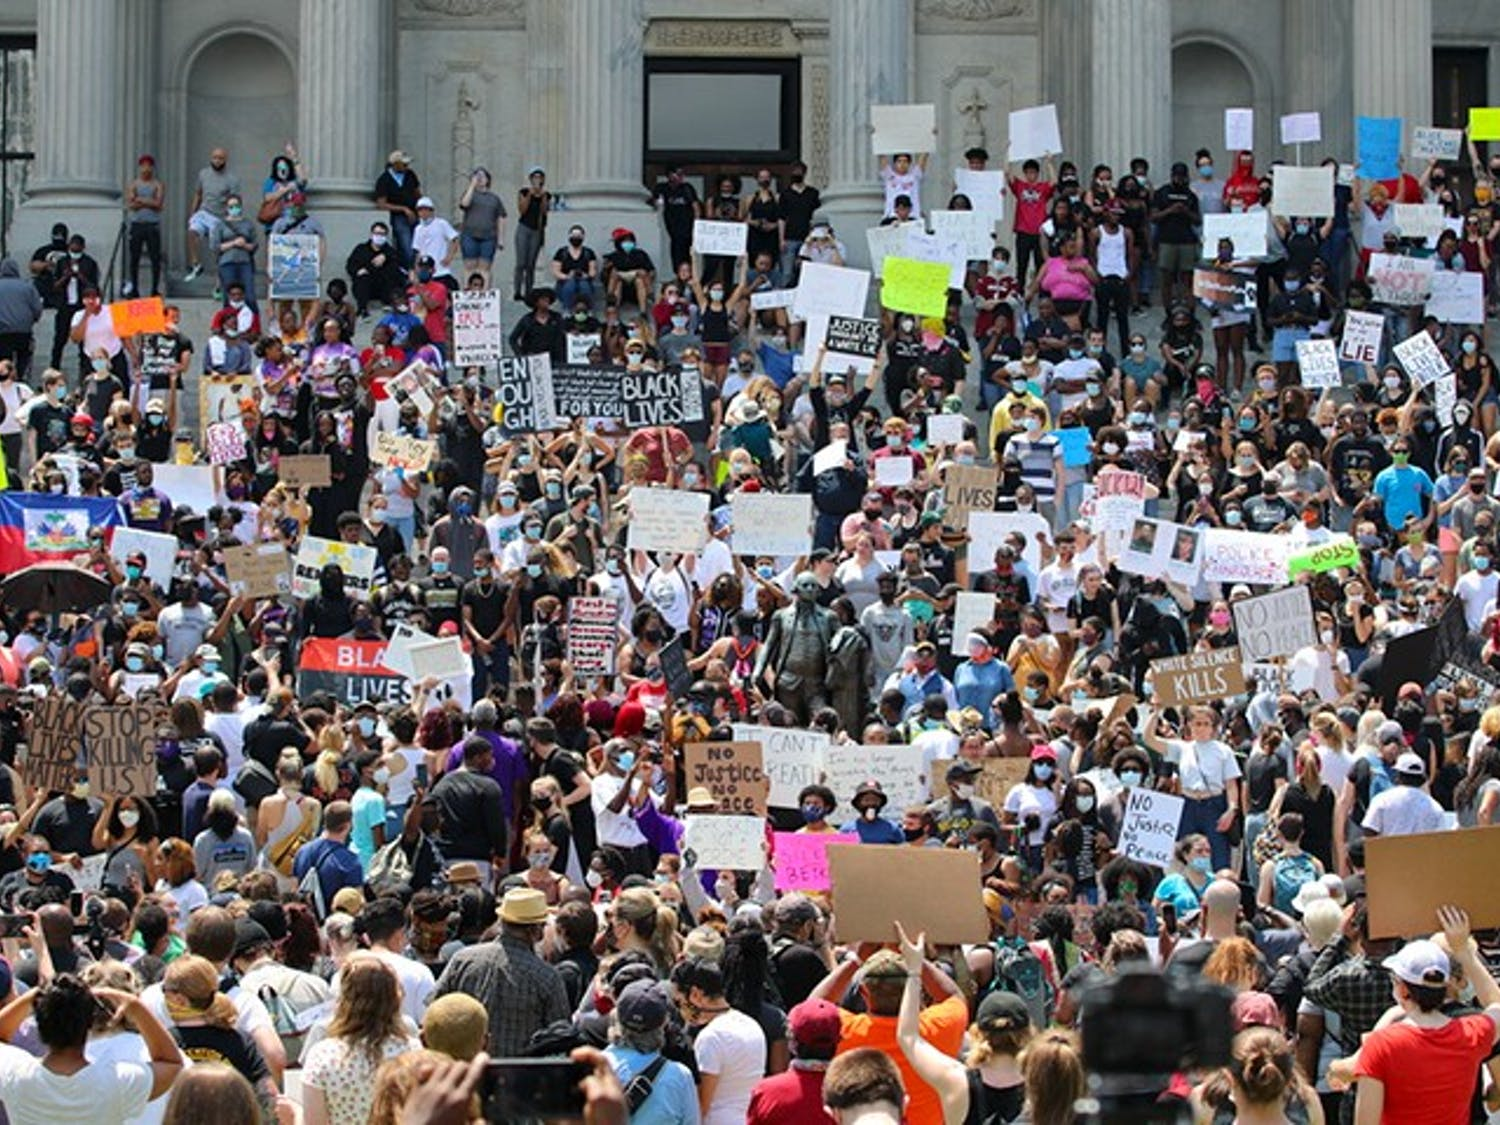 Hundreds of protesters peacefully protested at the Statehouse on May 30. The protestors held a rally on the steps for almost three hours.